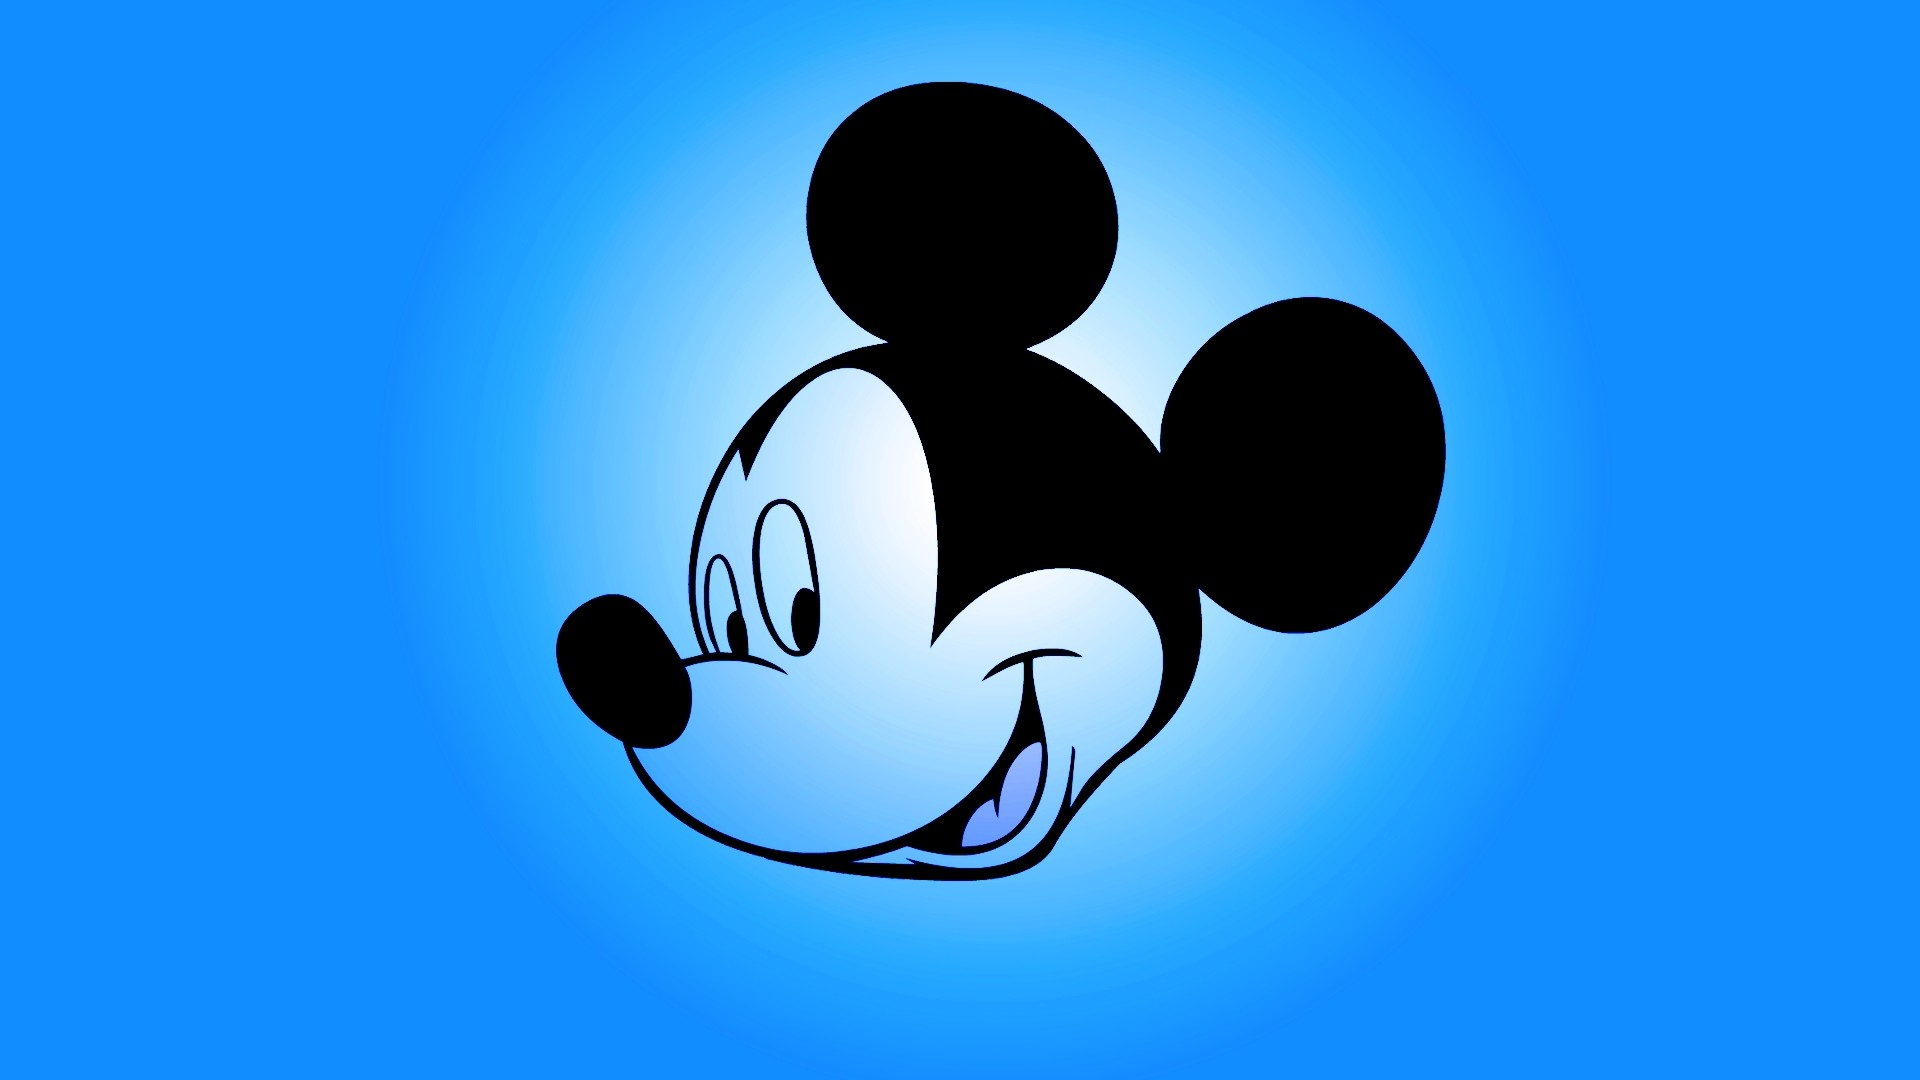 Mickey Mouse Wallpaper (62+ images)